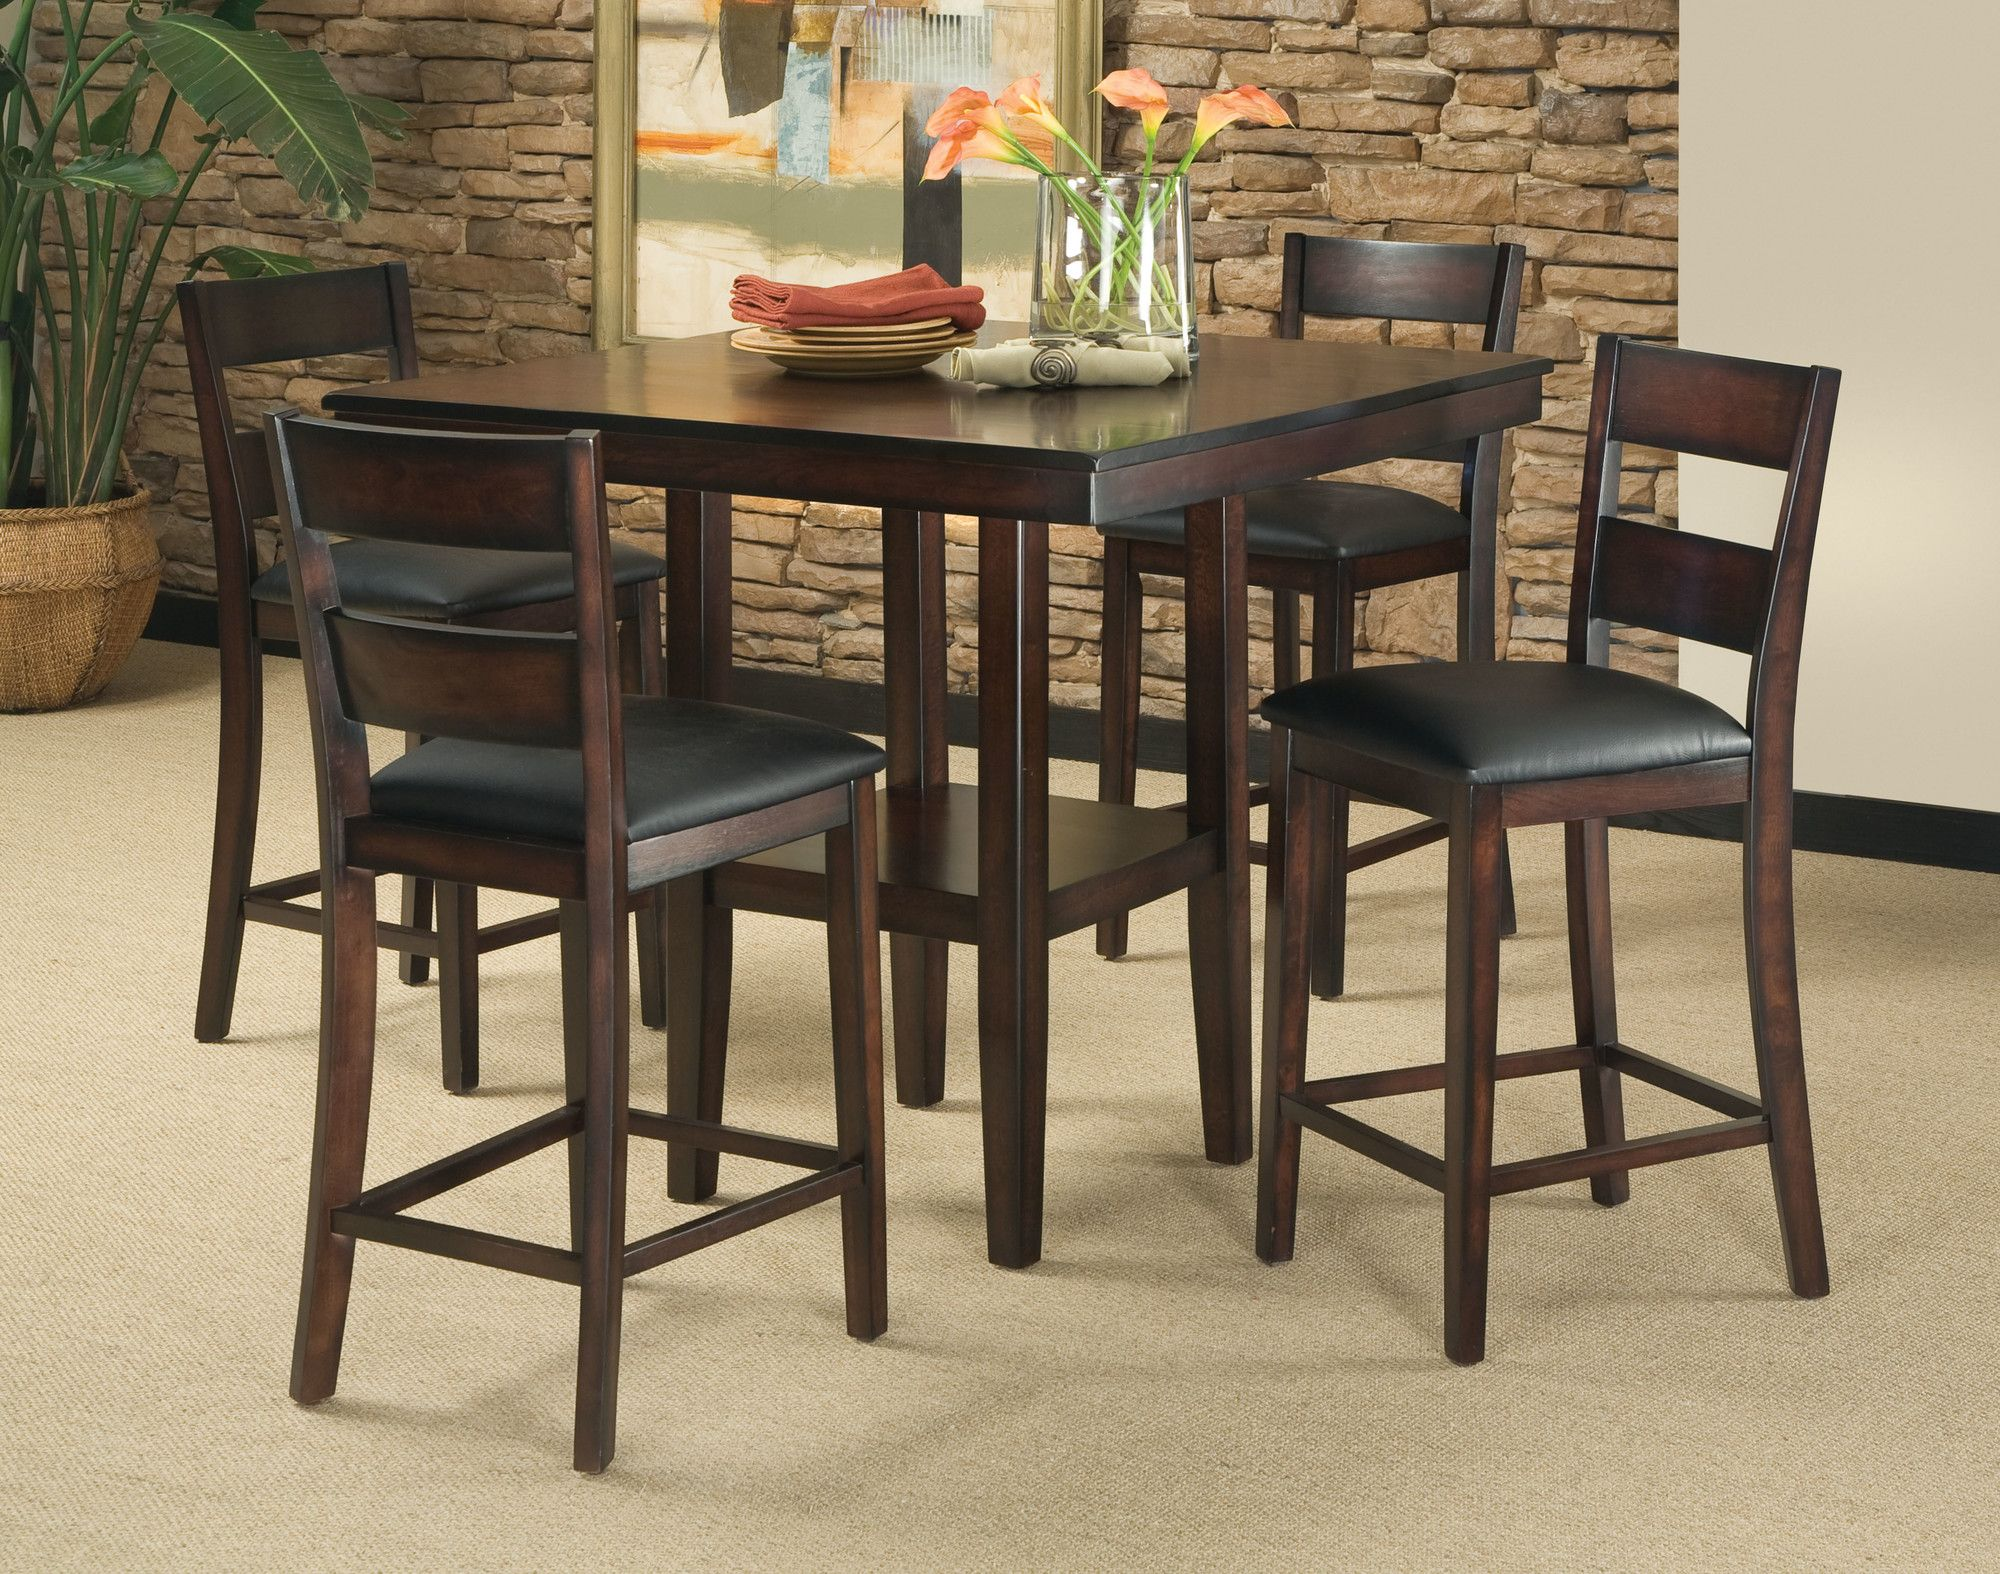 Thibault 5 Piece Counter Height Dining Set Counter Height Dining